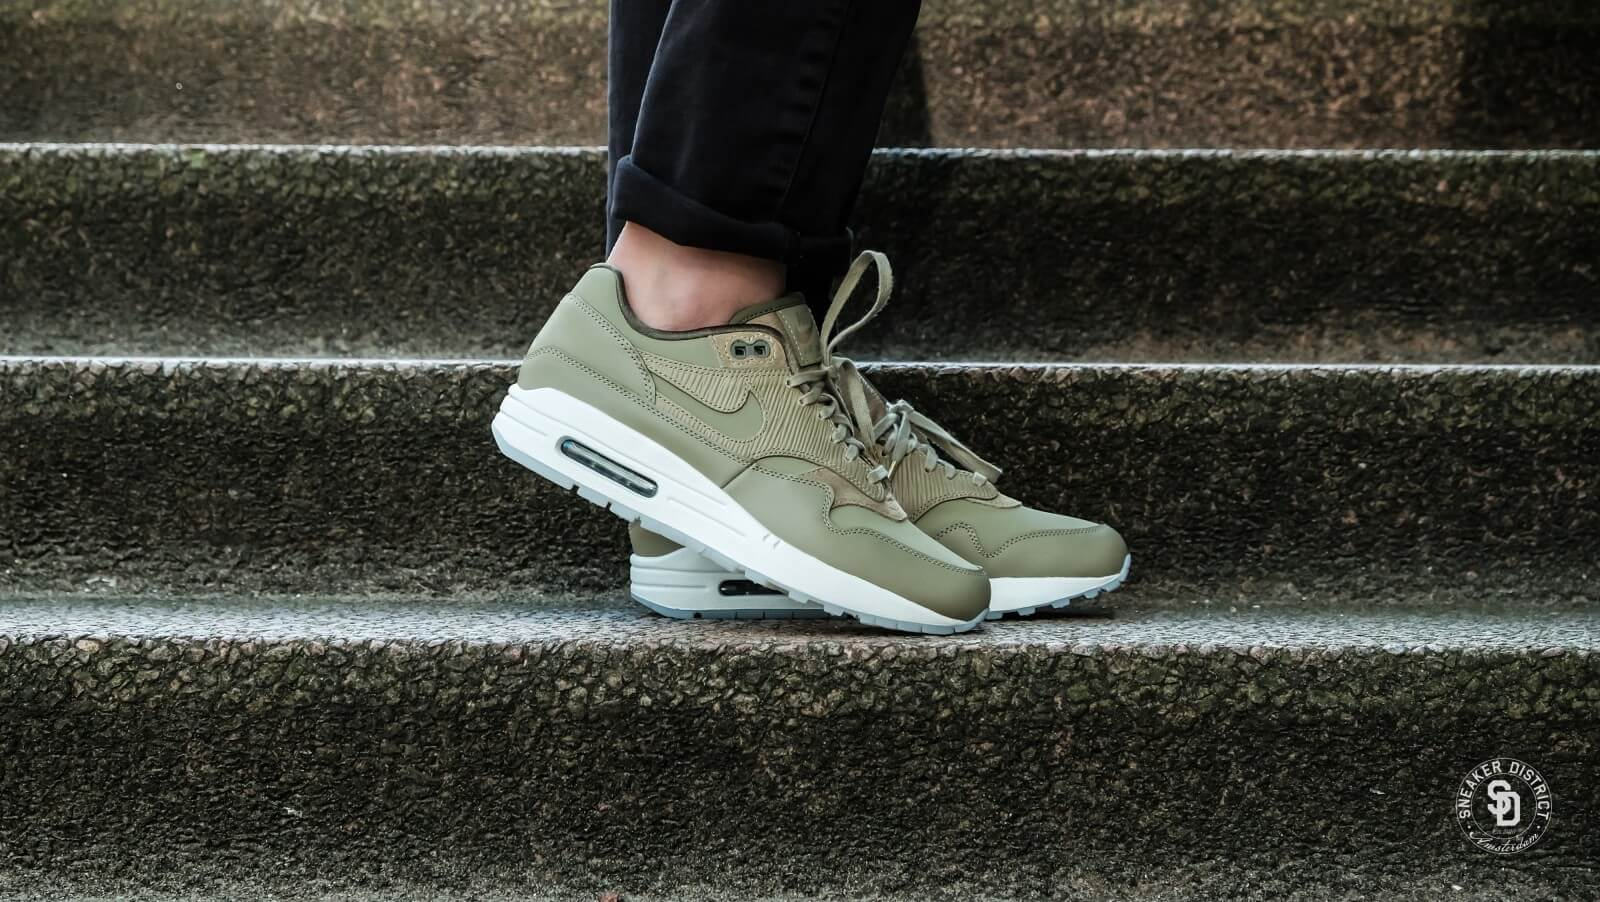 buy online e7a27 6bb74 ... Nike Womens Air Max 1 Premium Neutral OliveMedium Olive - 45 ...